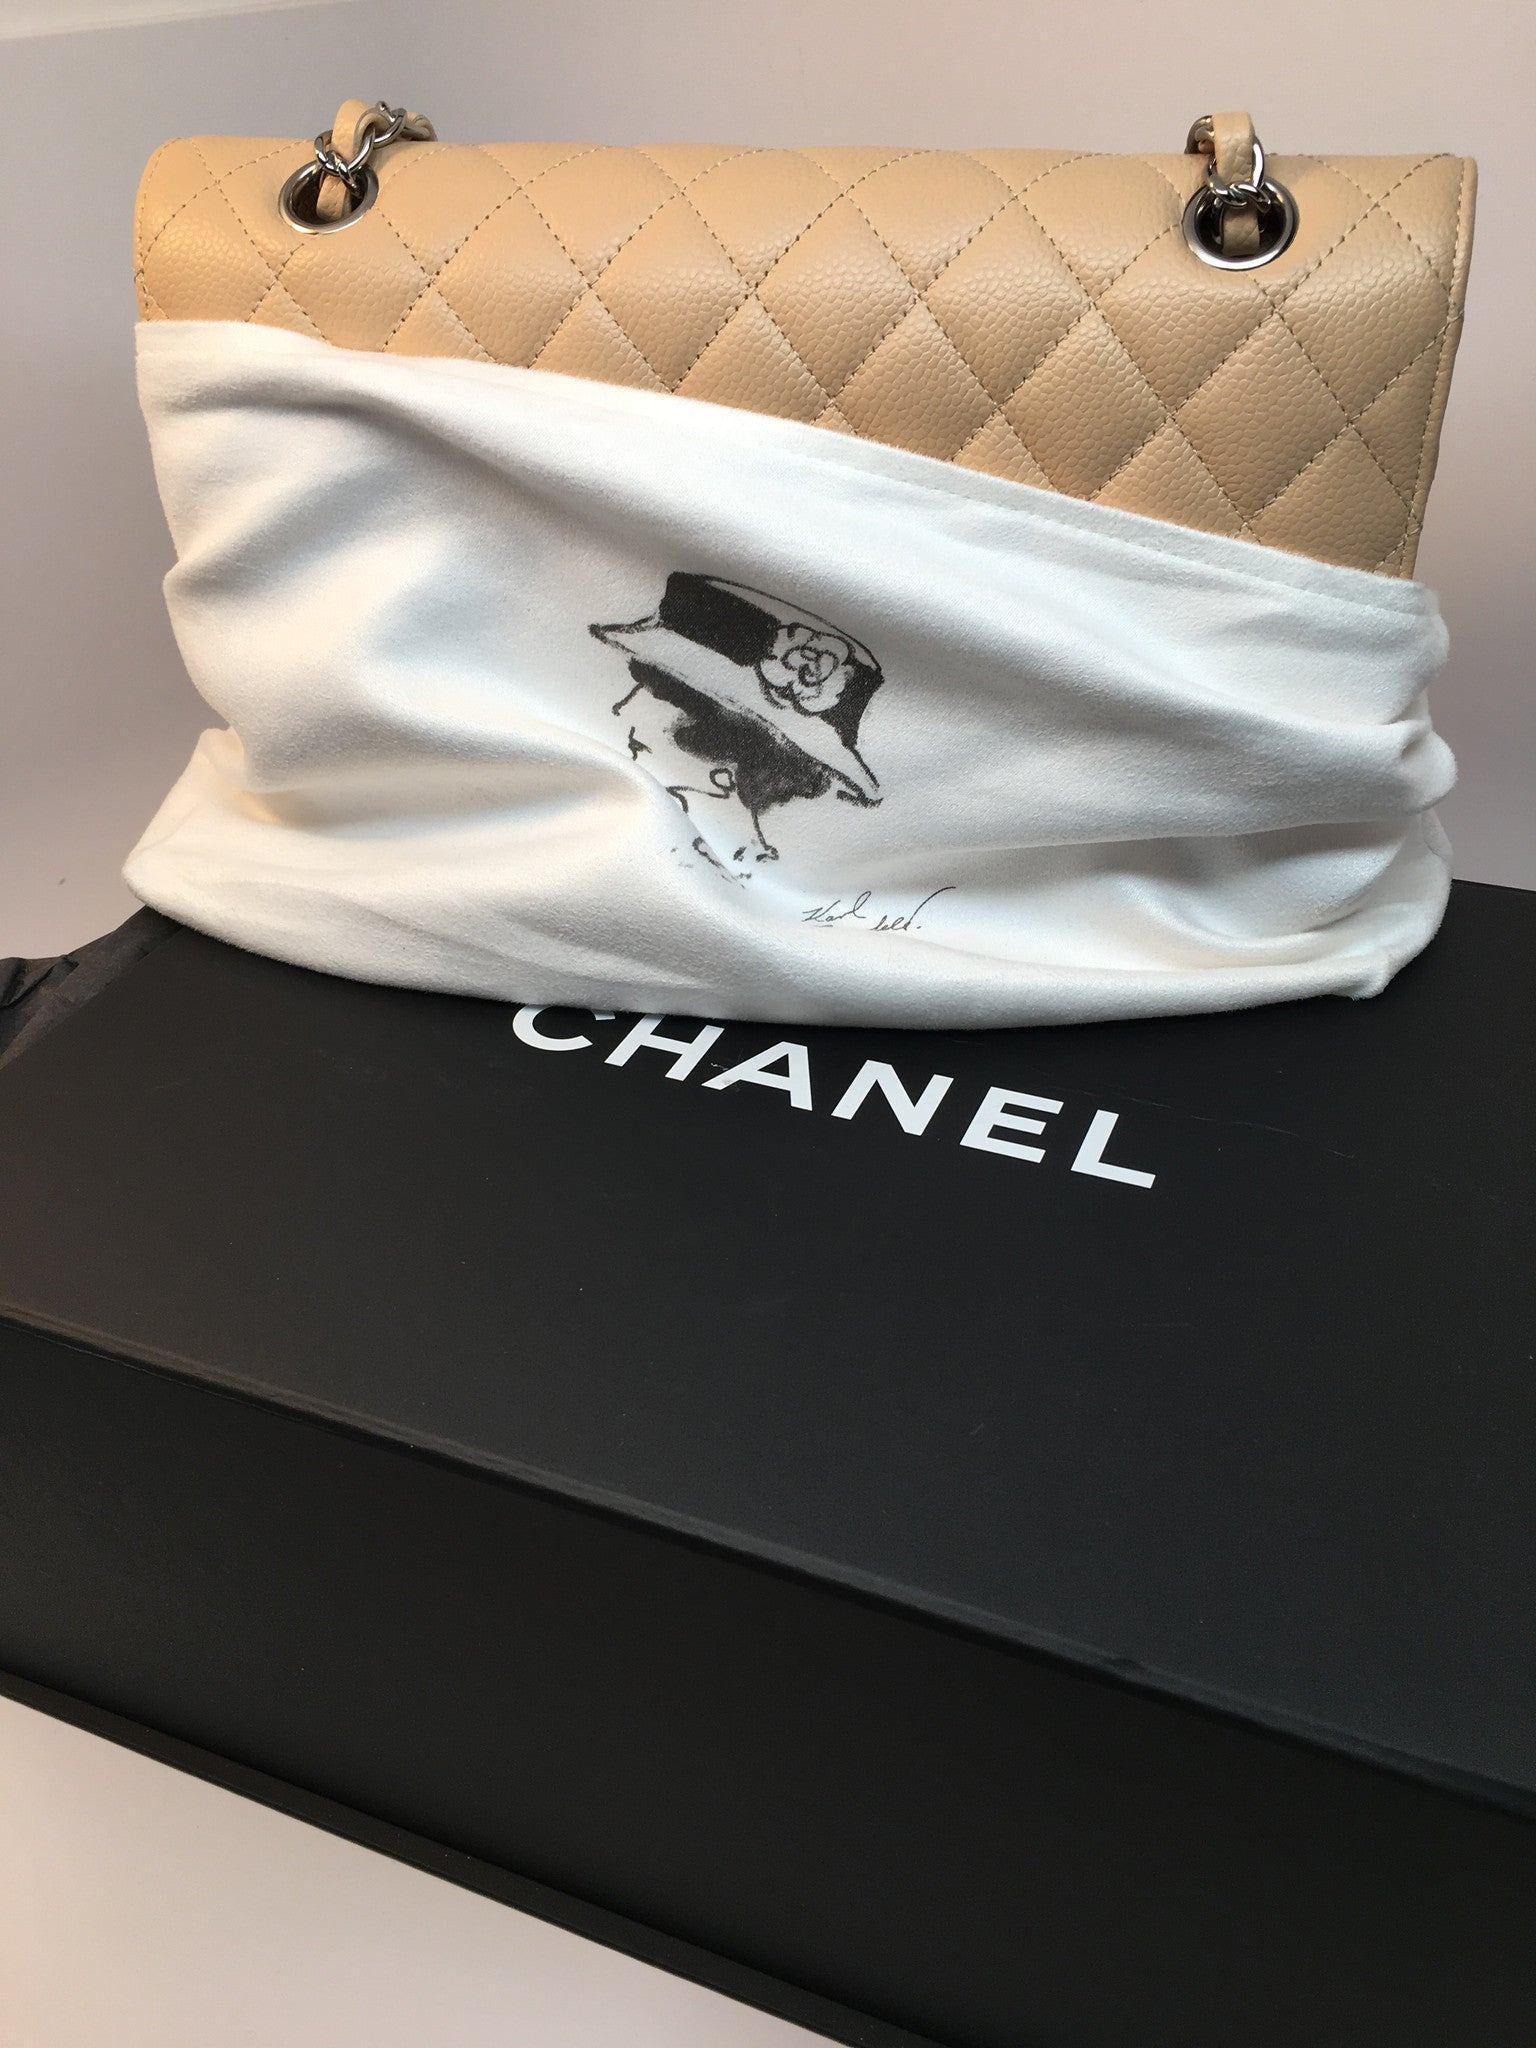 CHANEL BEIGE CAVIAR MEDIUM 2.55 CLASSIC DOUBLE FLAP BAG